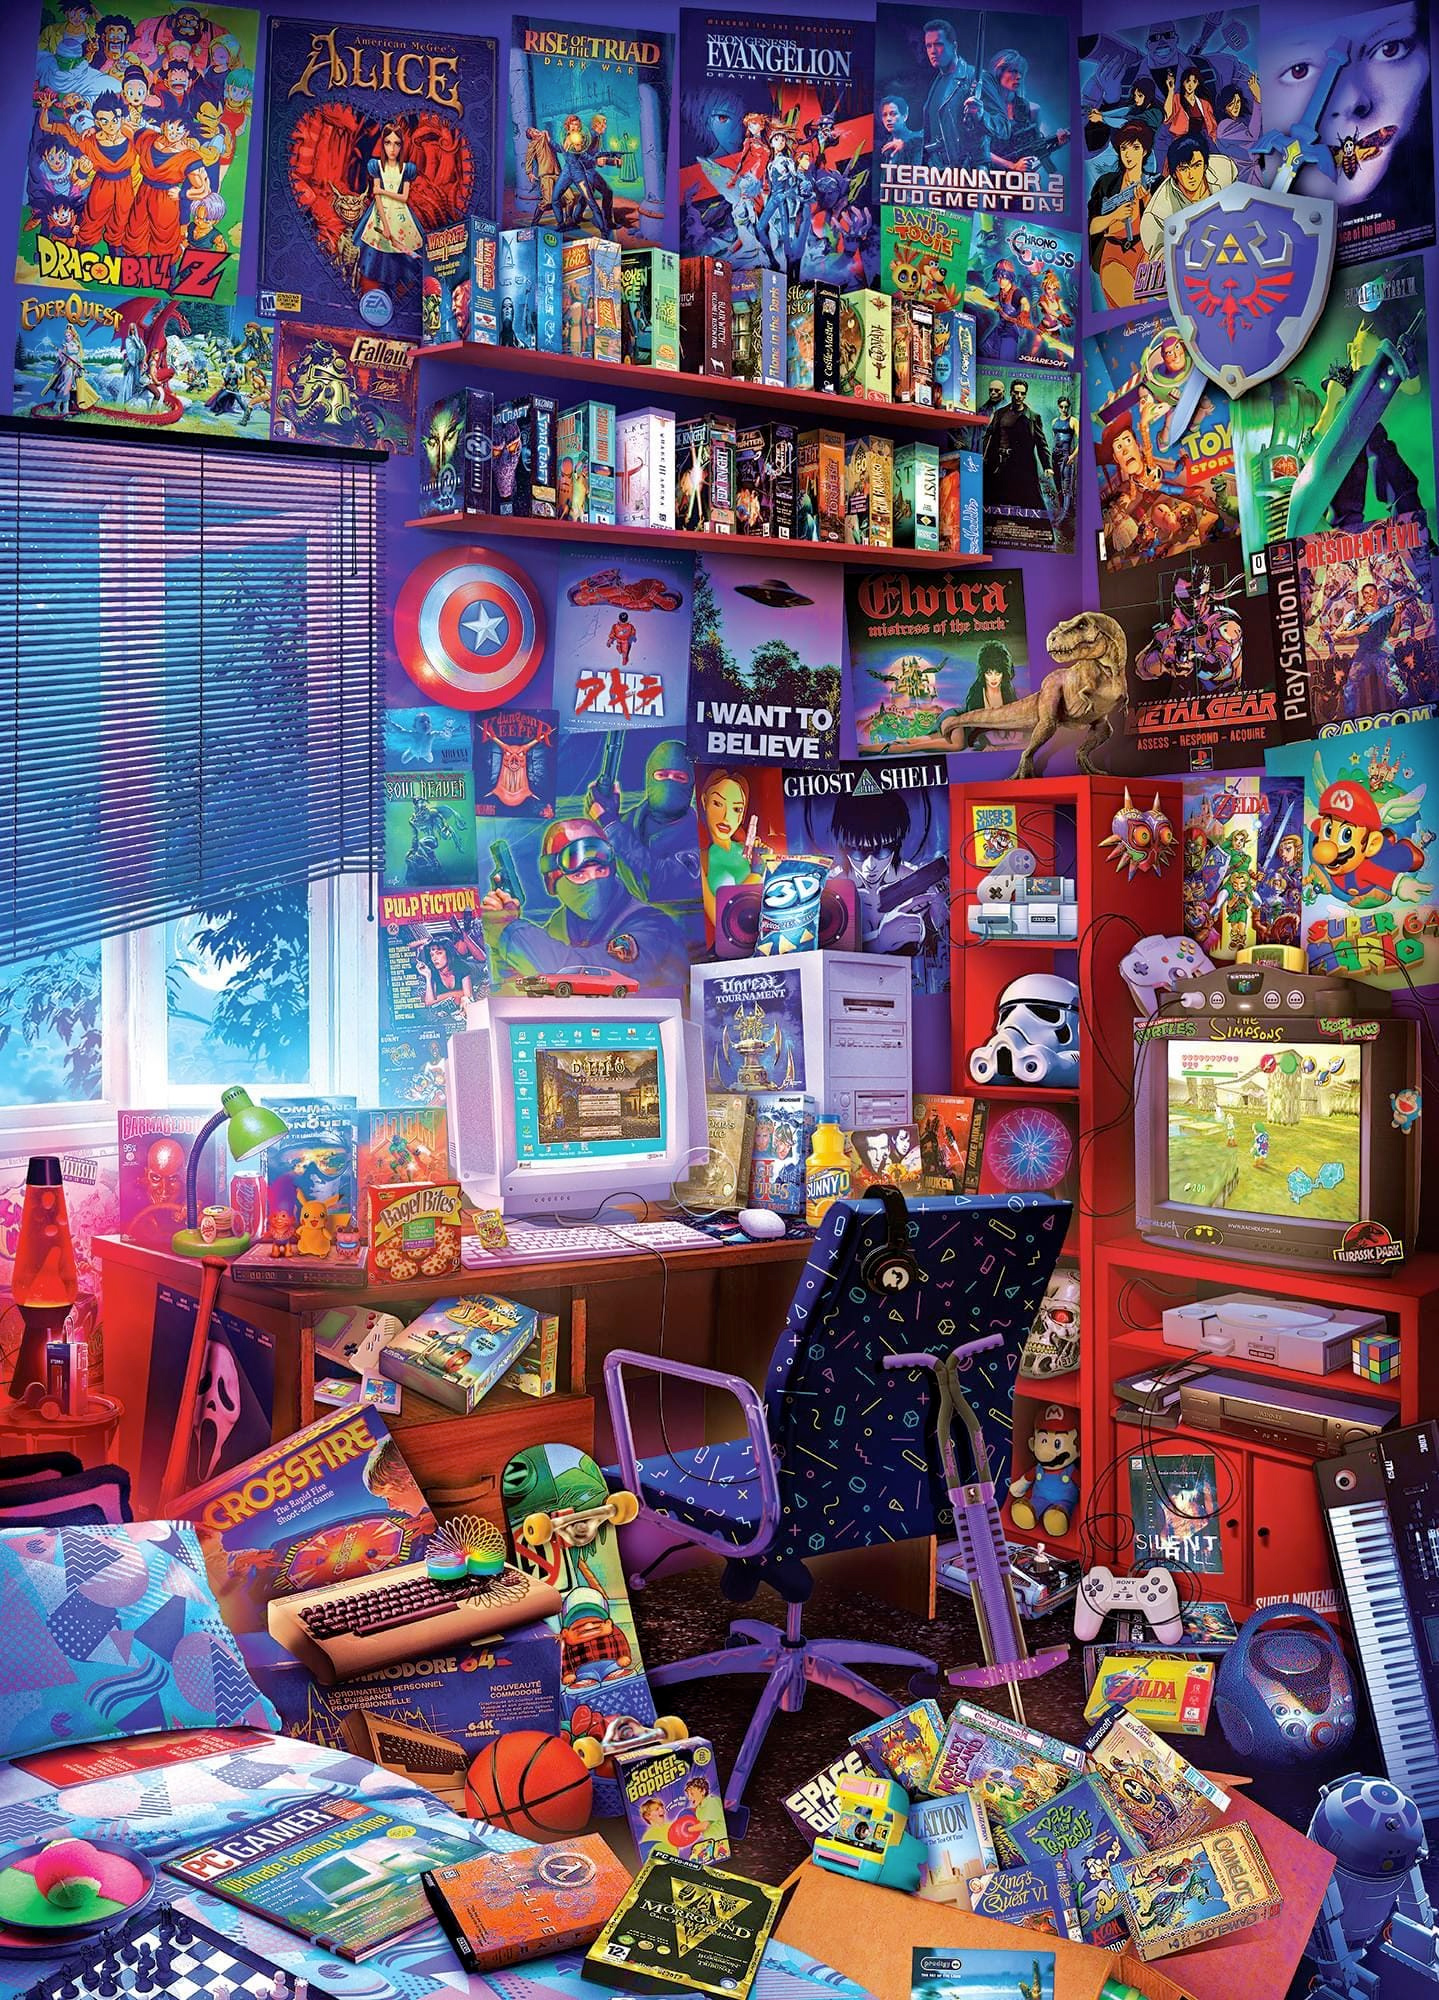 80s Game Room 1000 Piece Jigsaw Puzzle